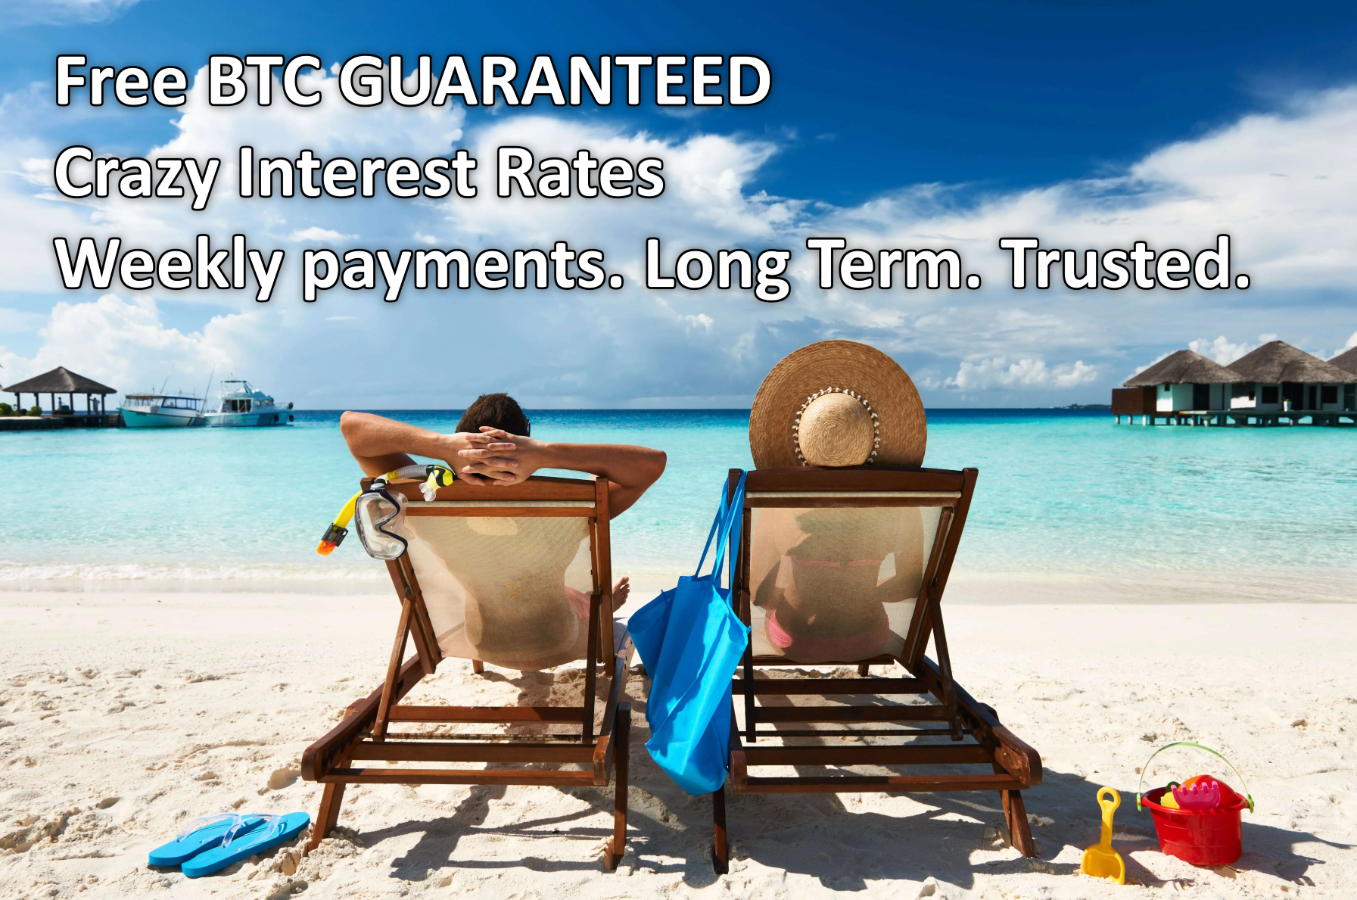 Get $60 BTC for FREE plus up to 17% APY - GUARANTEED